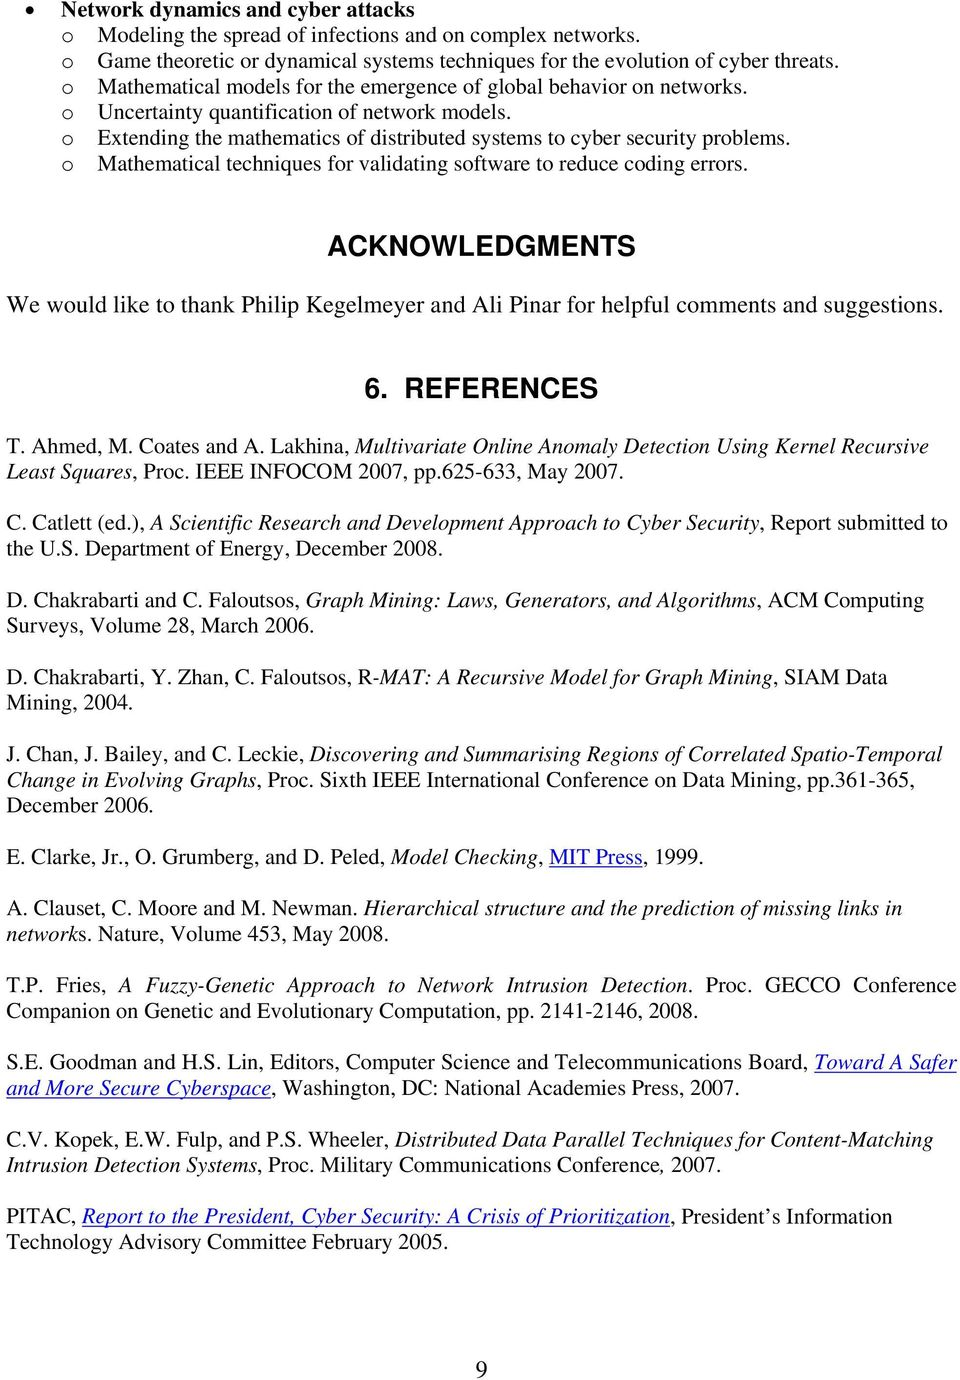 o Mathematical techniques for validating software to reduce coding errors. ACKNOWLEDGMENTS We would like to thank Philip Kegelmeyer and Ali Pinar for helpful comments and suggestions. 6. REFERENCES T.